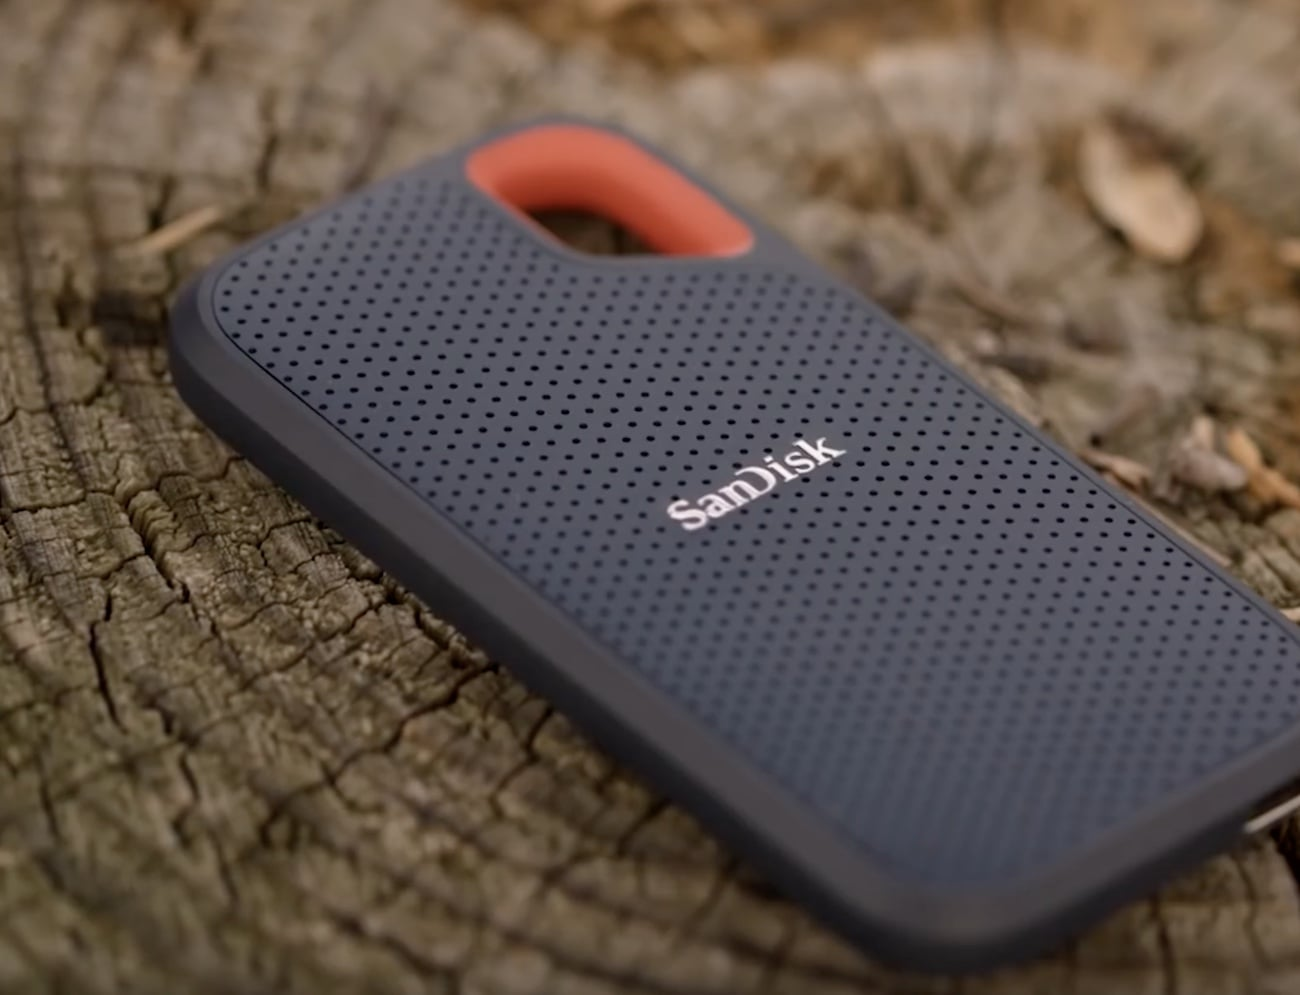 SanDisk 1 TB Extreme Portable SSD